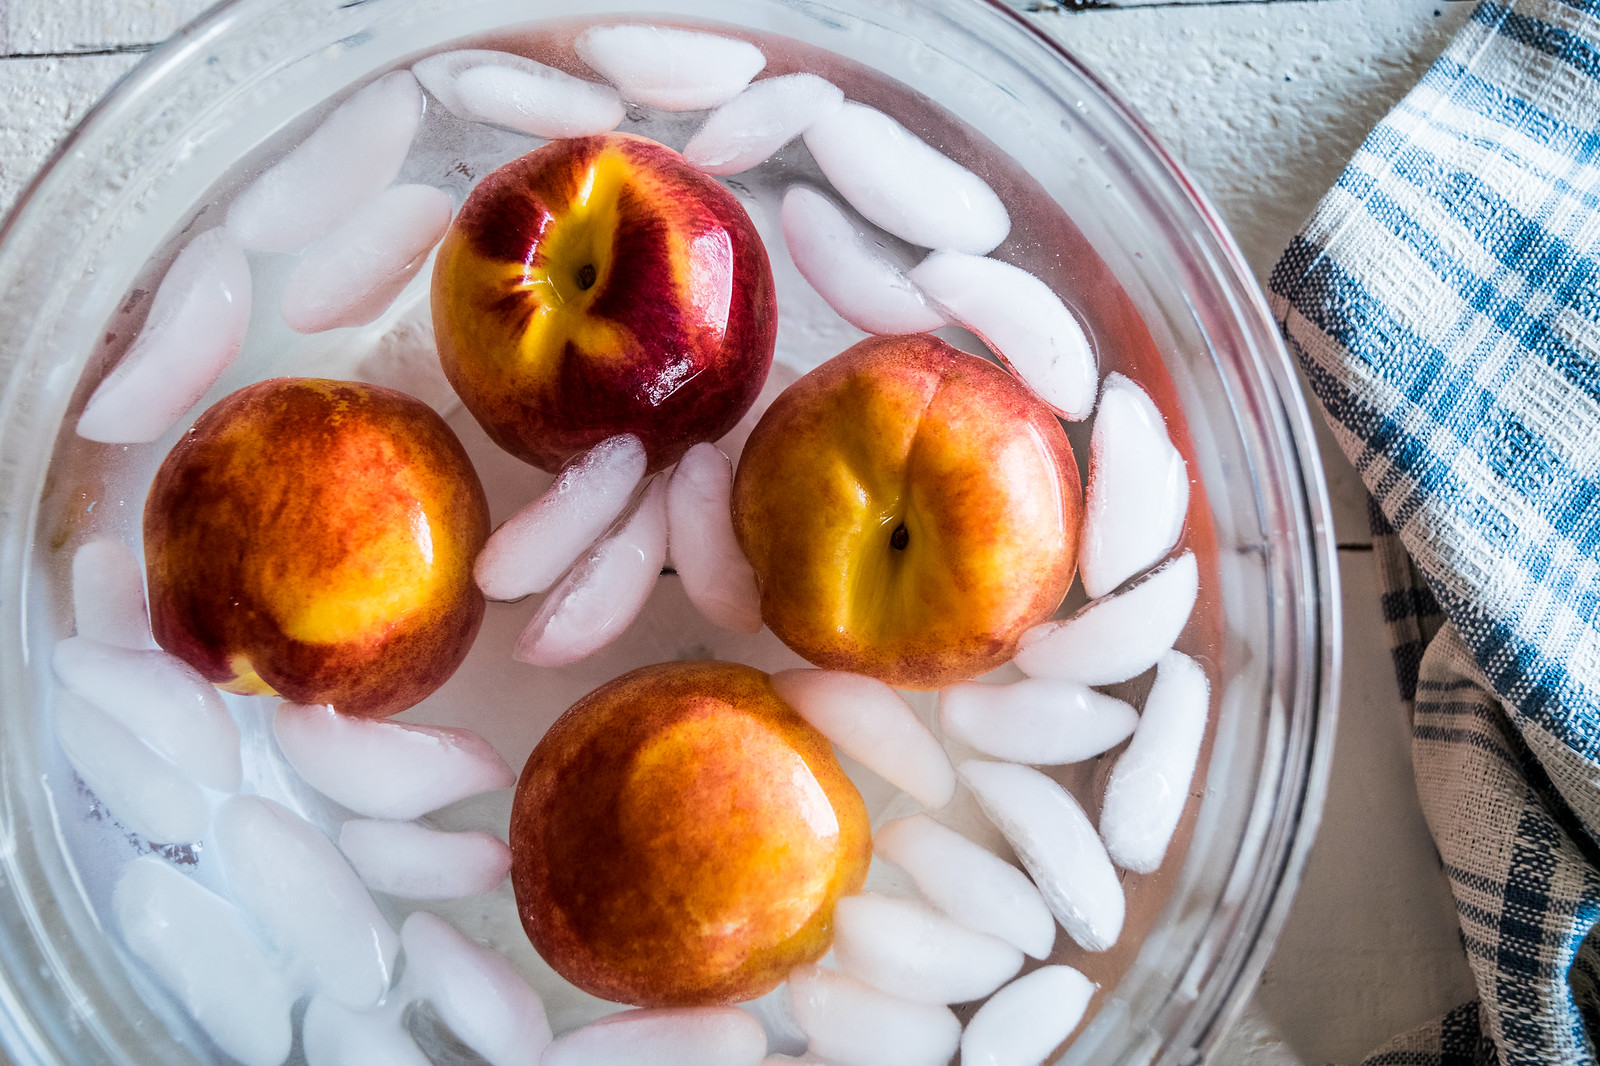 giving the peaches an ice bath after a dip in boiling water makes them easy to peel.